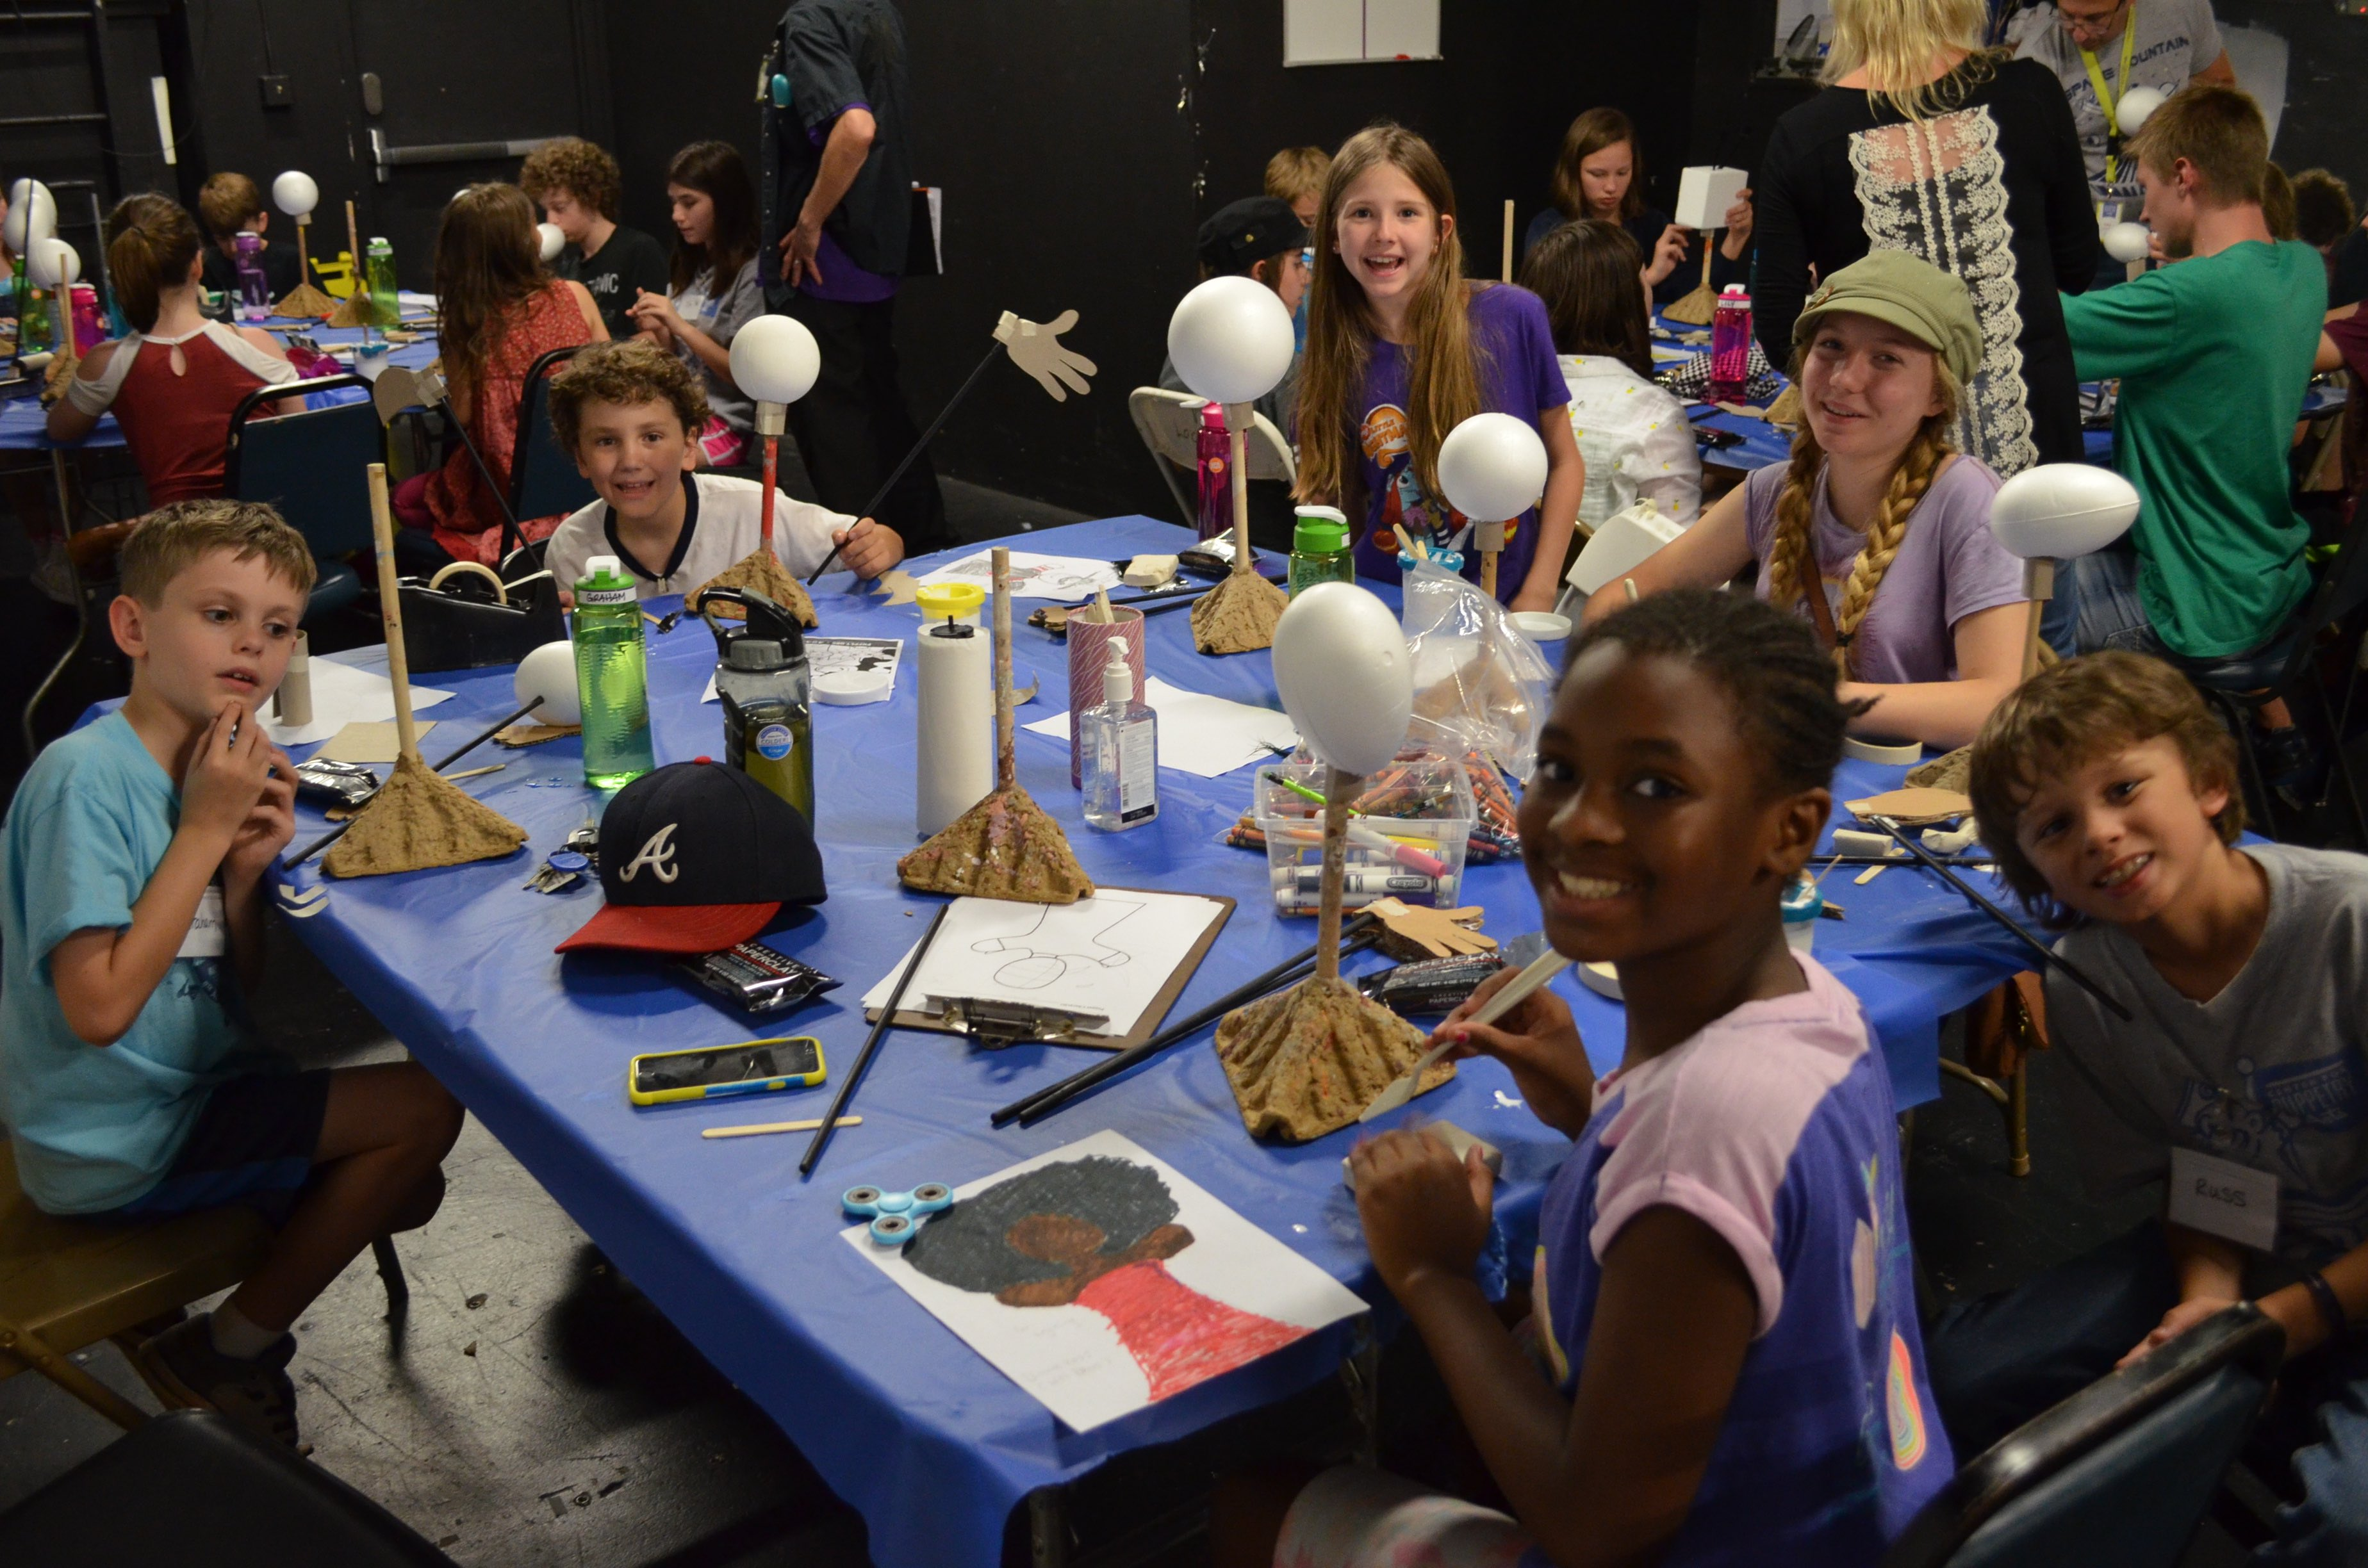 Aspiring puppeteers create puppets at the Center for Puppetry Arts.